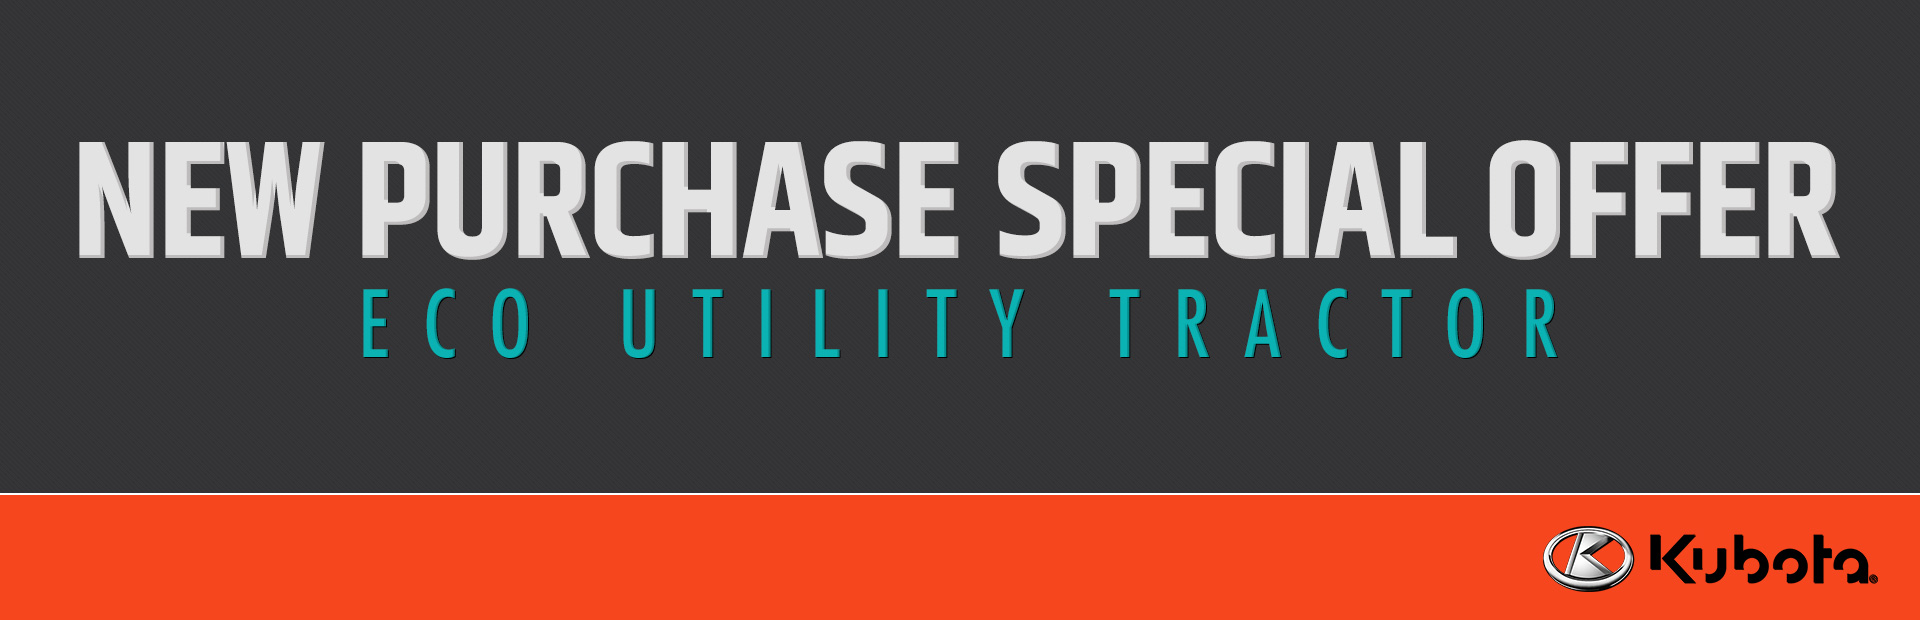 Kubota: New Purchase Special Offer - Eco Utility Tractor